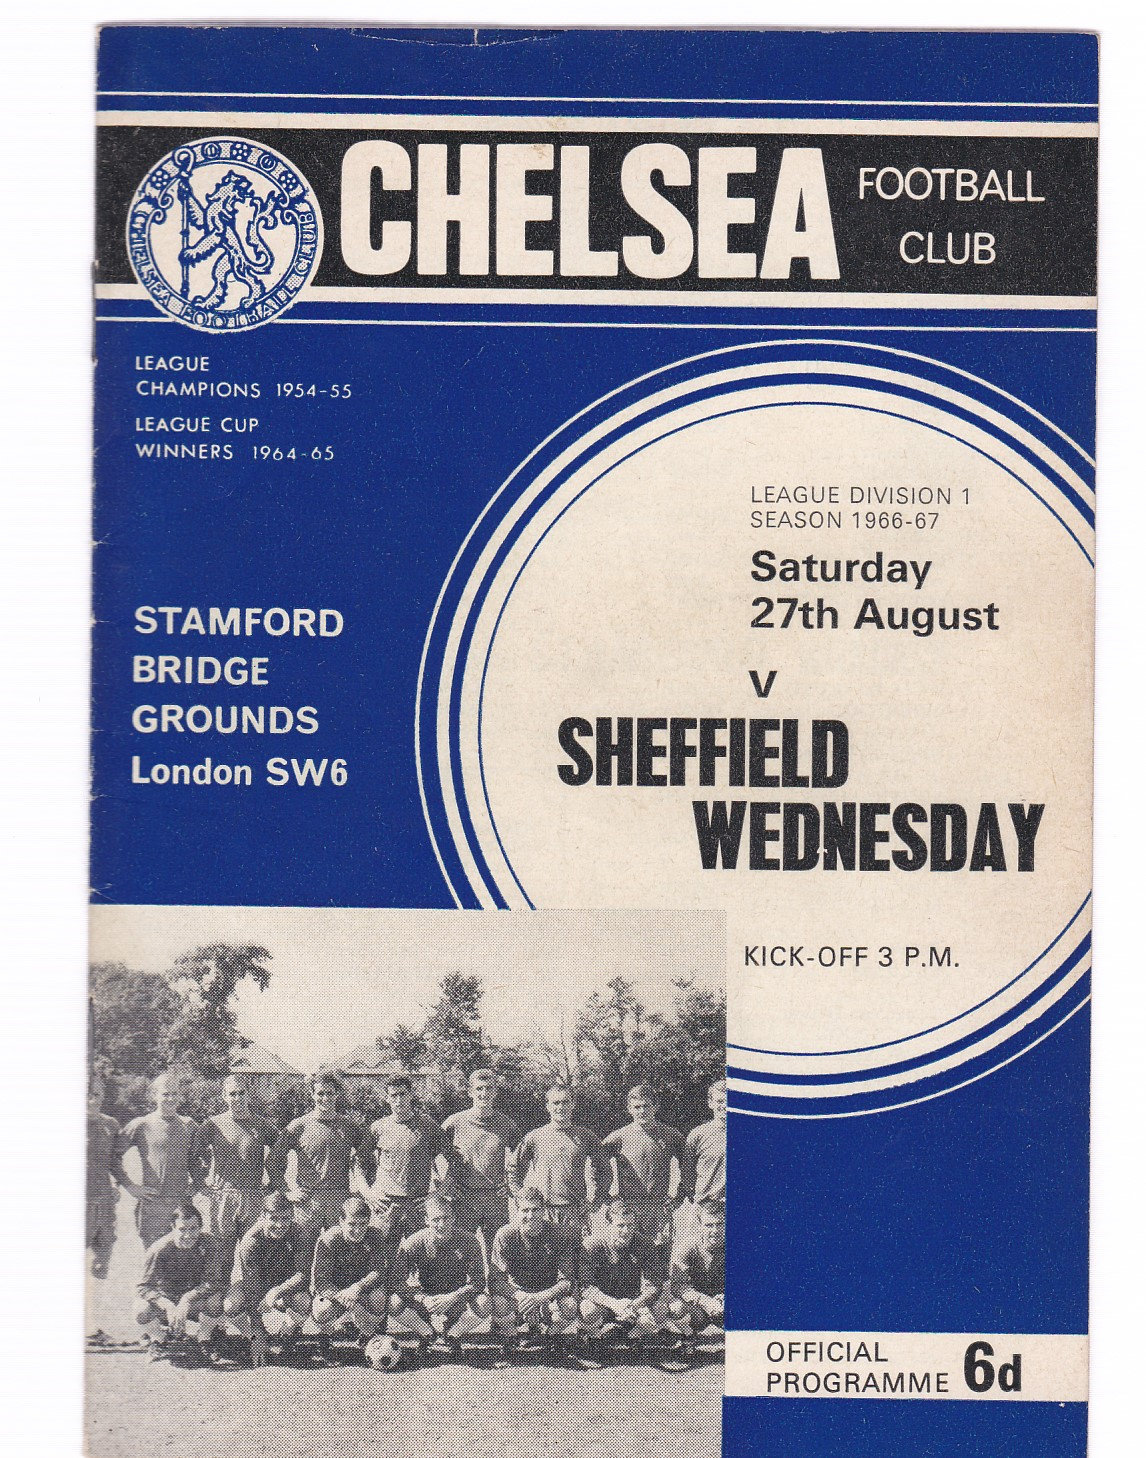 Chelsea v Sheffield Wednesday 1966 August 27th League